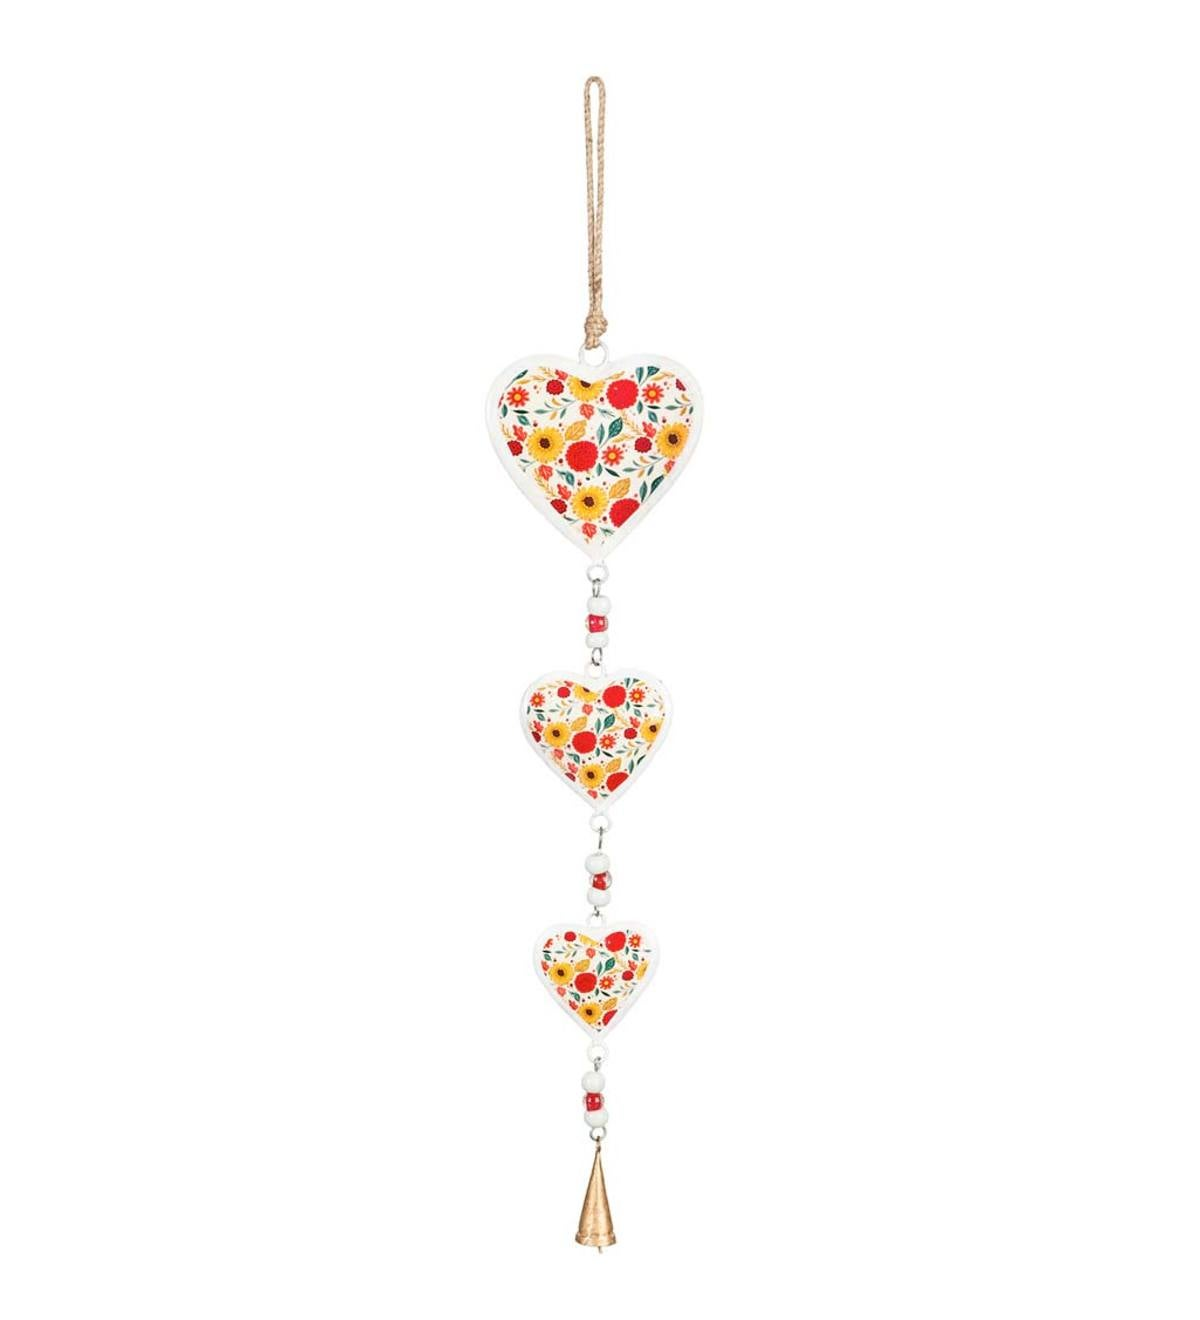 Blooming Floral Hanging Heart Decor with Bell